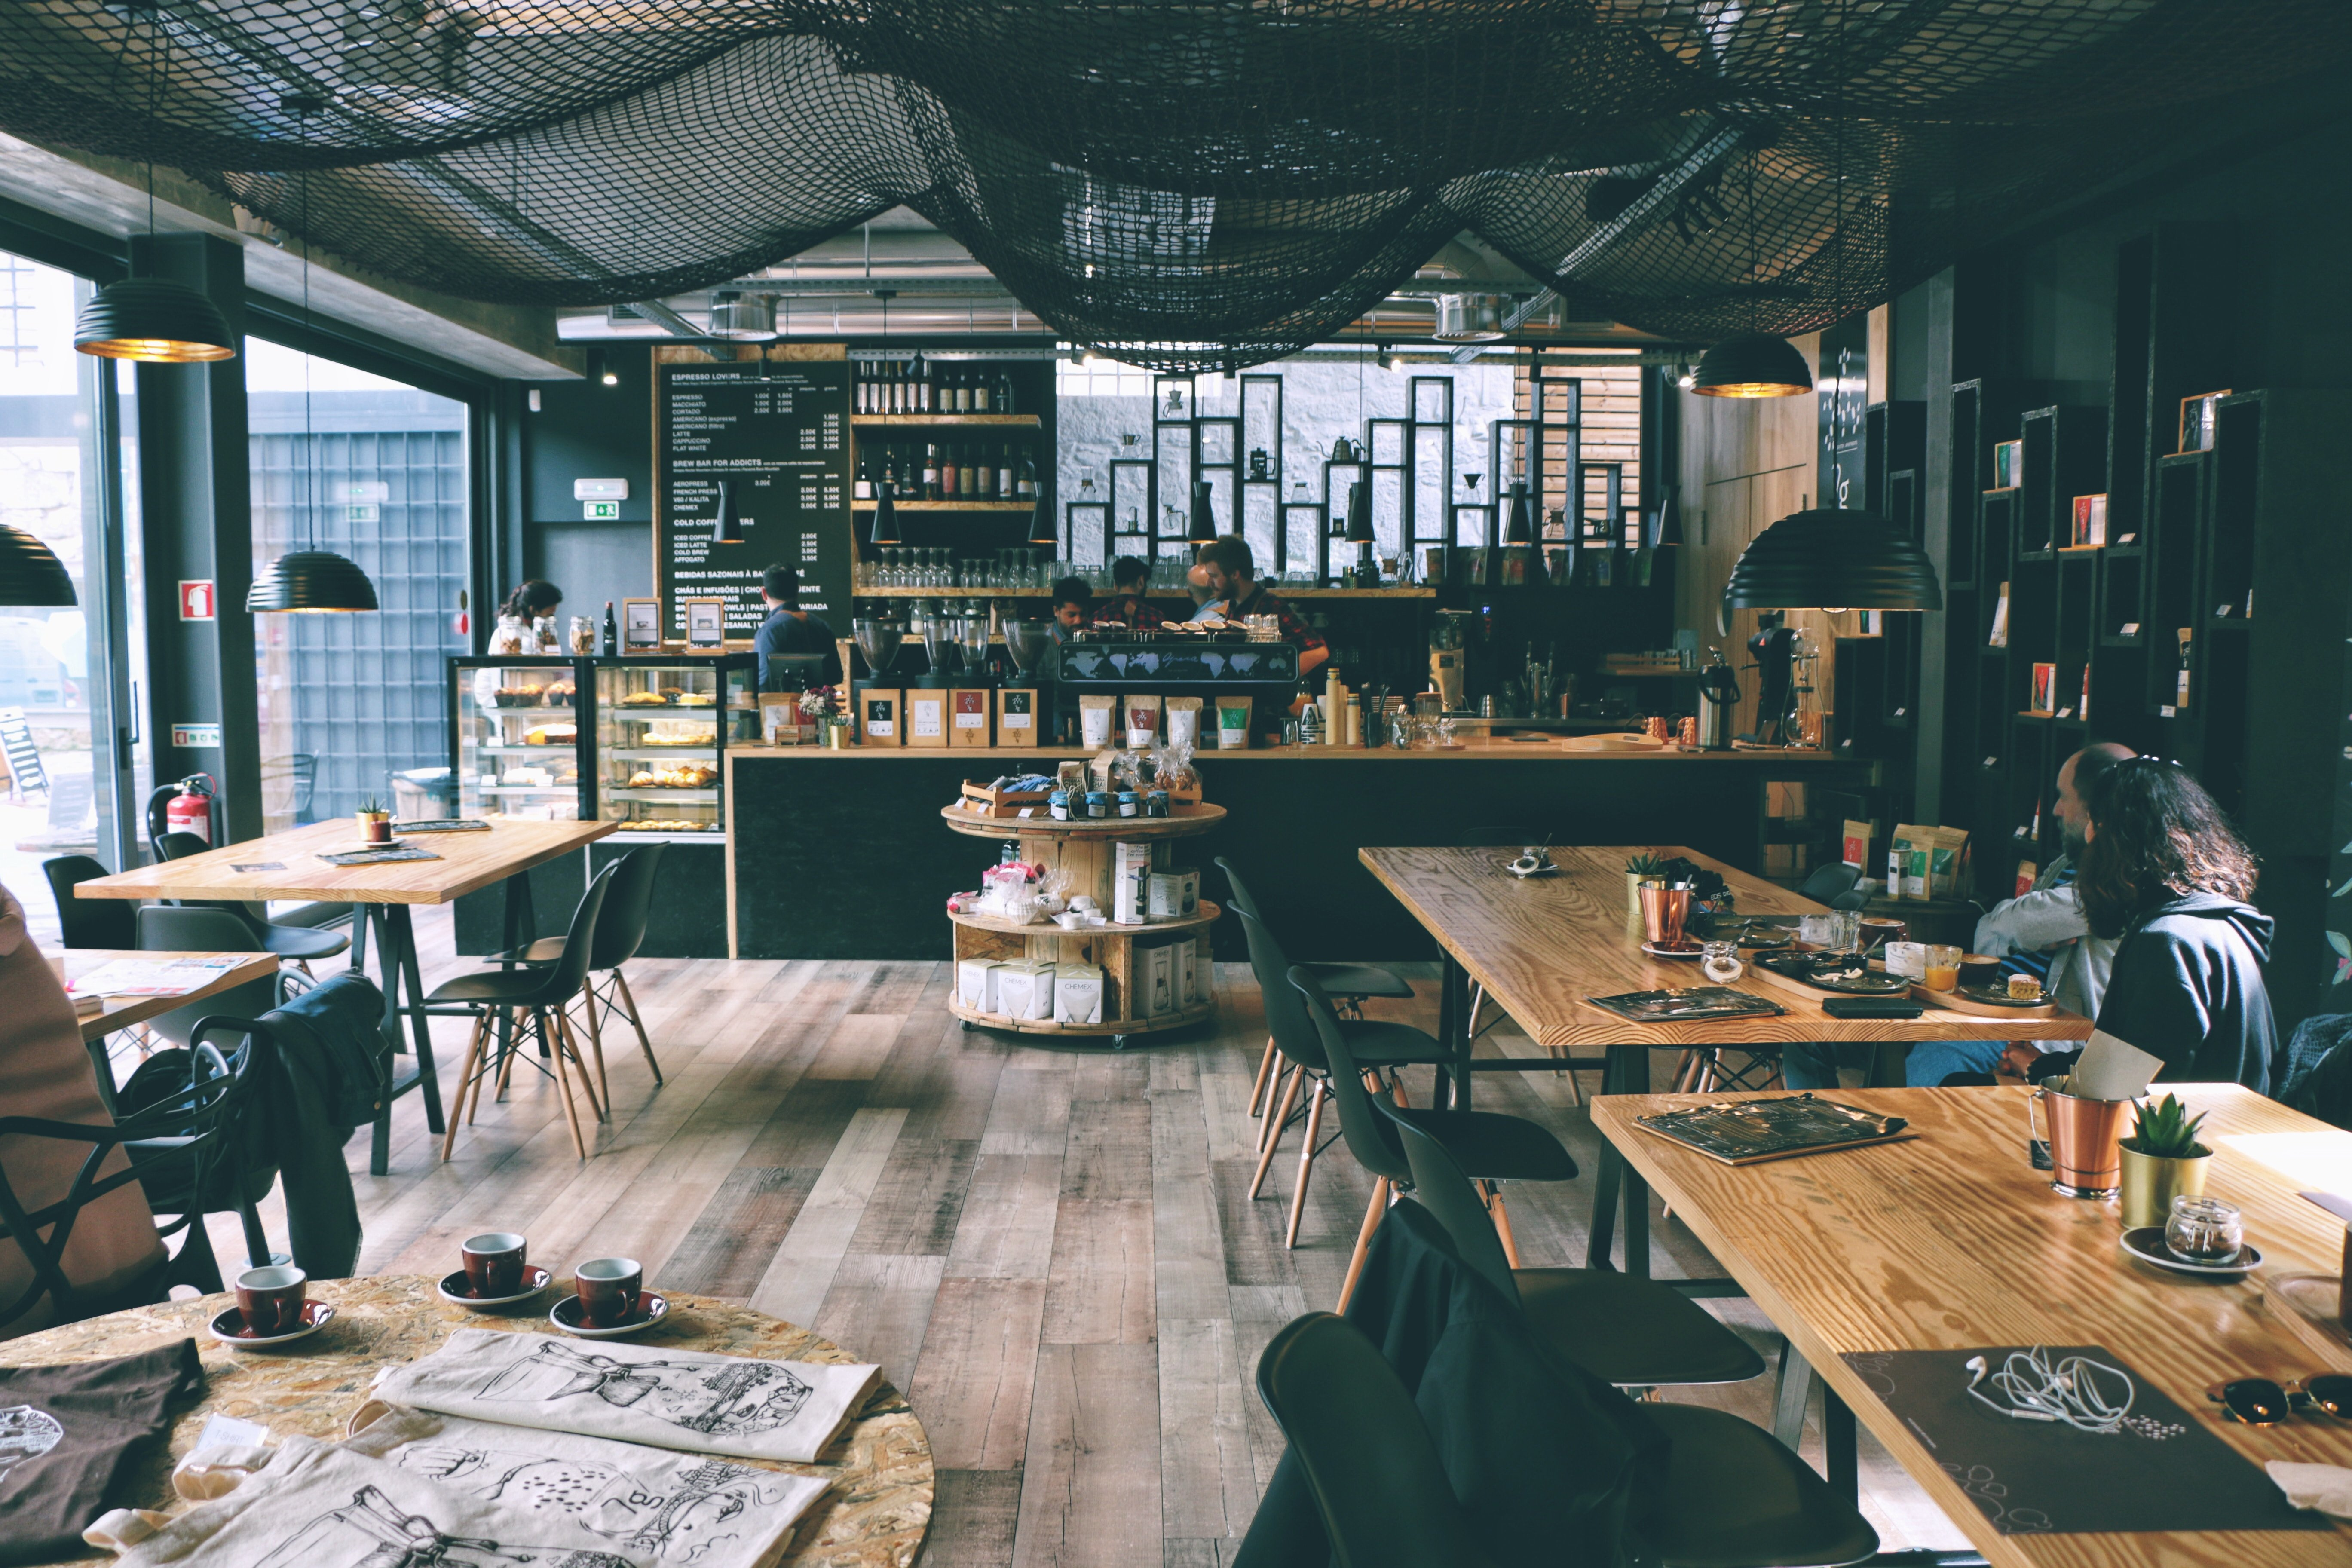 A nice restaurant. | Source: Unsplash